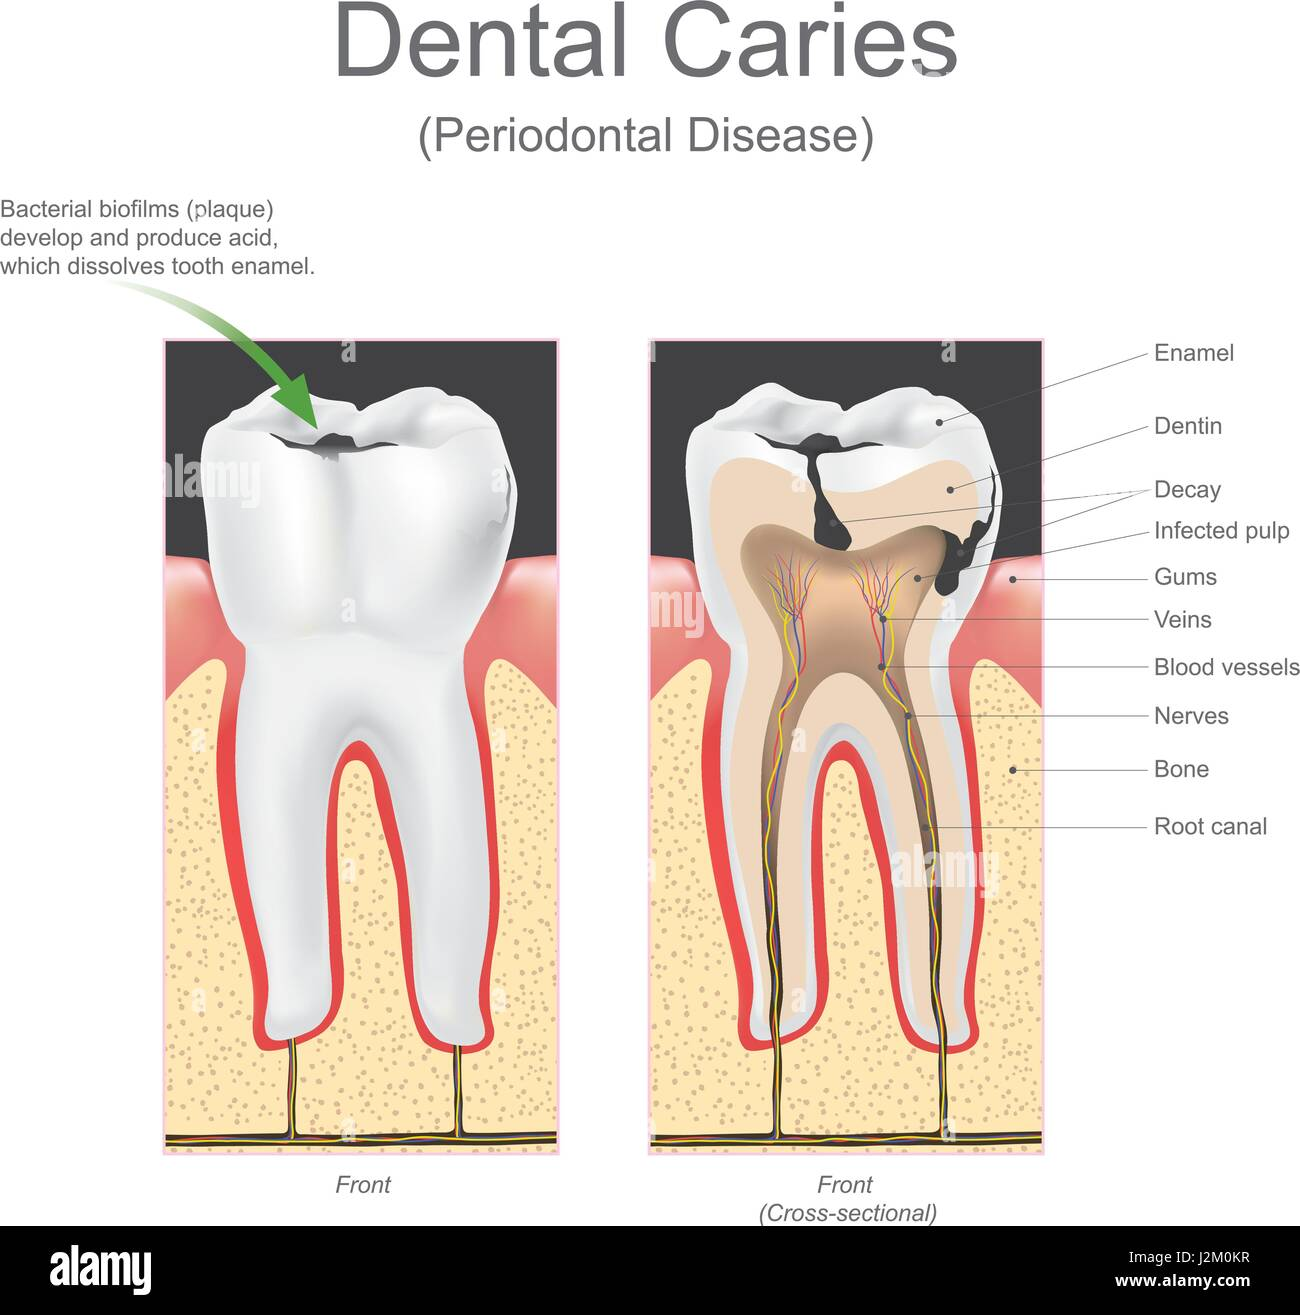 Dental caries is the scientific term for tooth decay or cavities. It ...